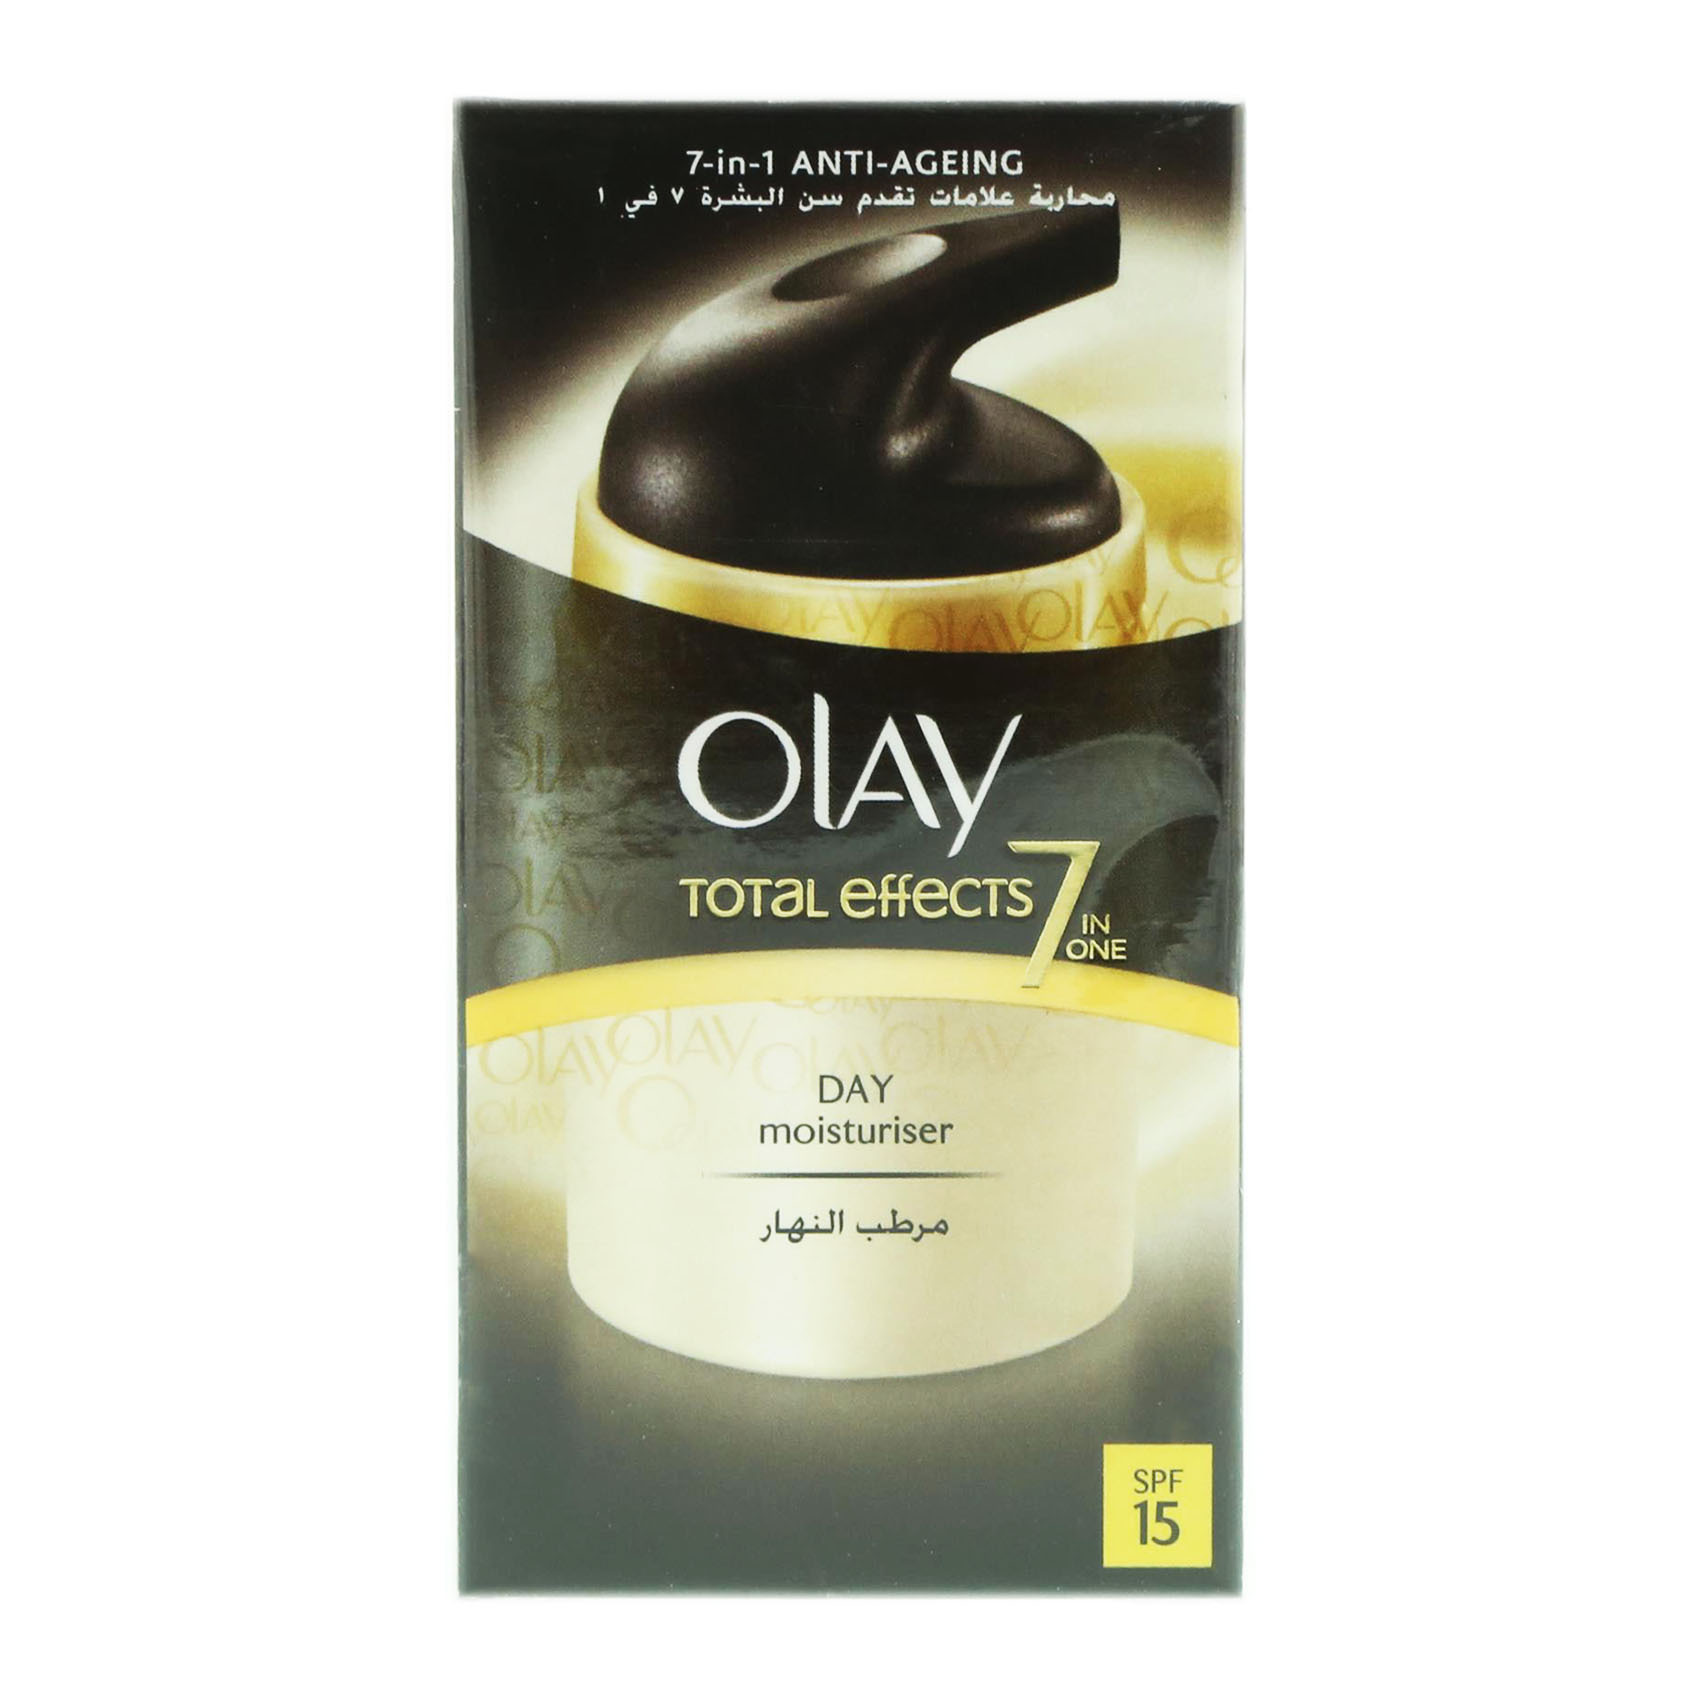 OLAY TOTAL EFFECTS MOIST UV DAY 50M